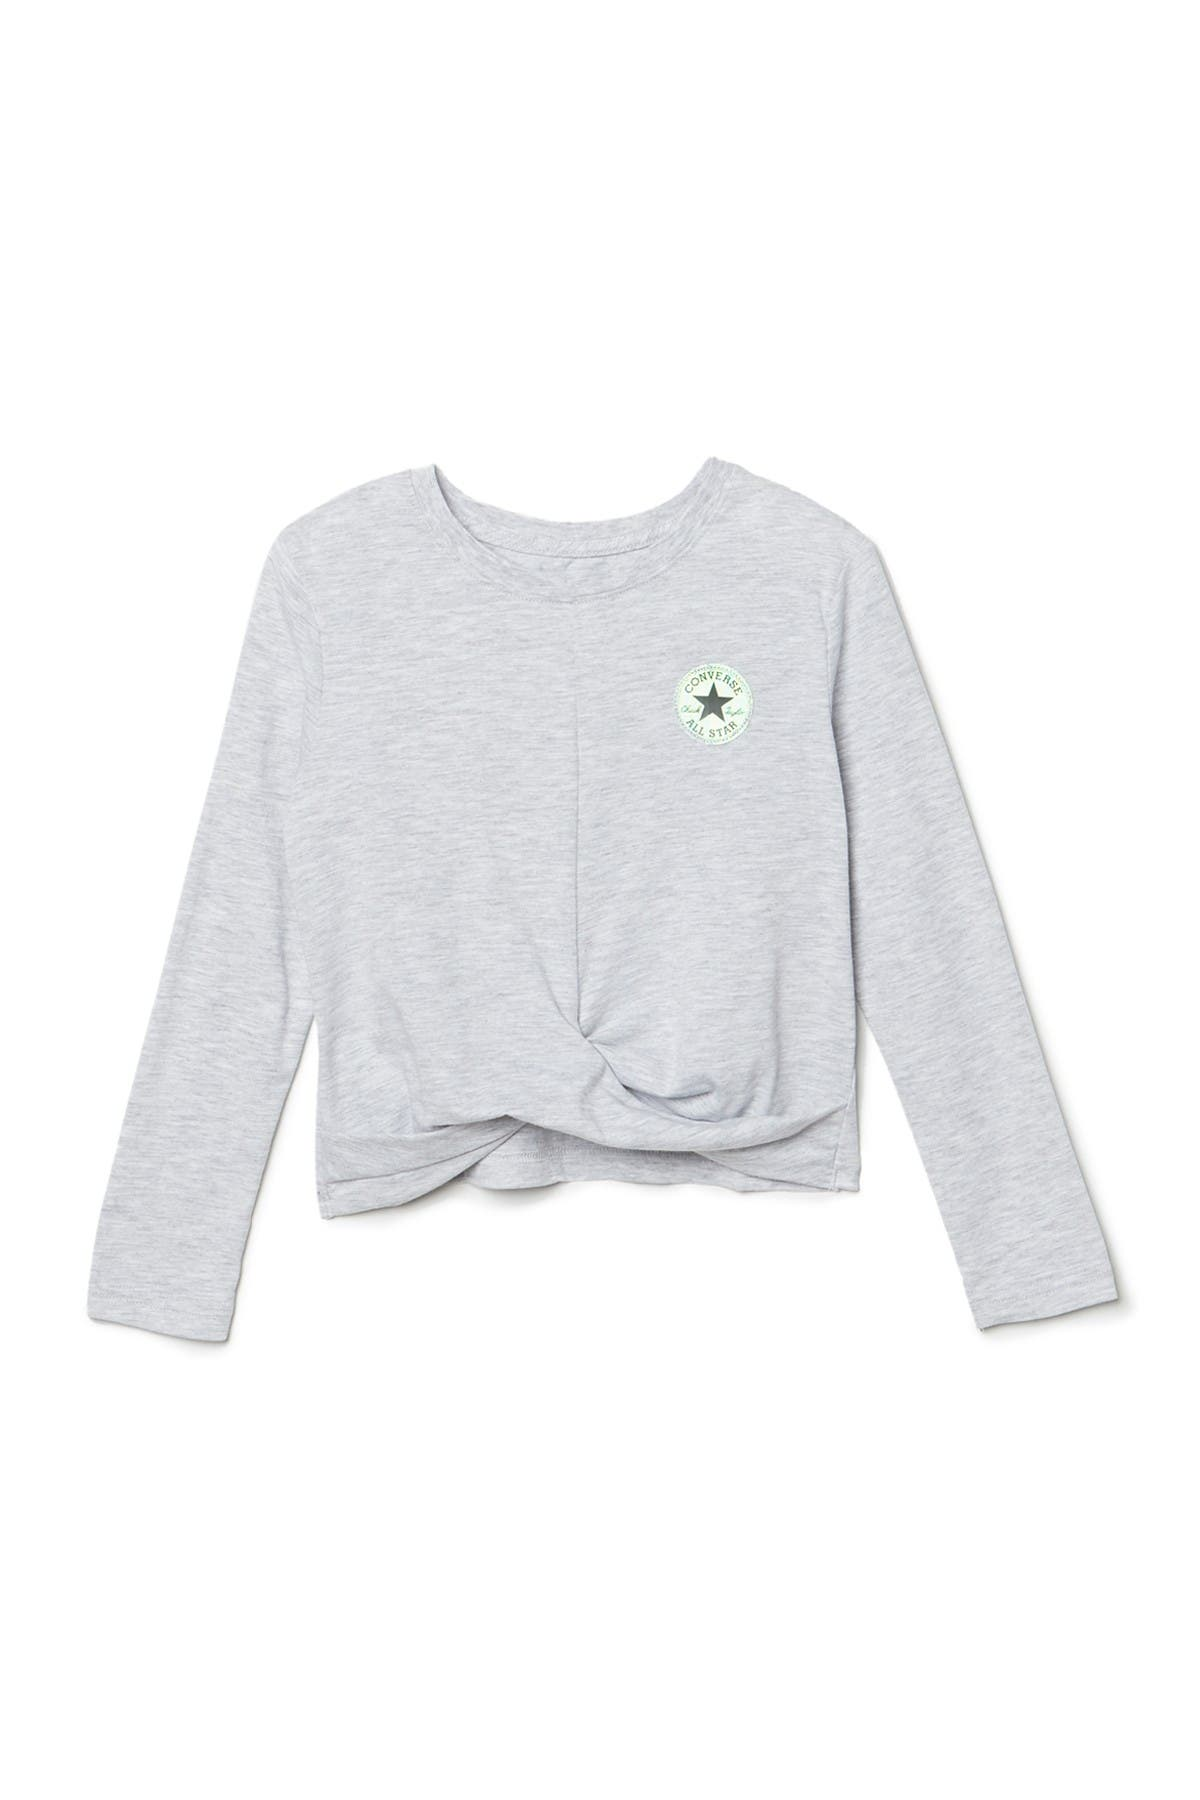 Image of Converse Long Sleeve Twist Knot Top